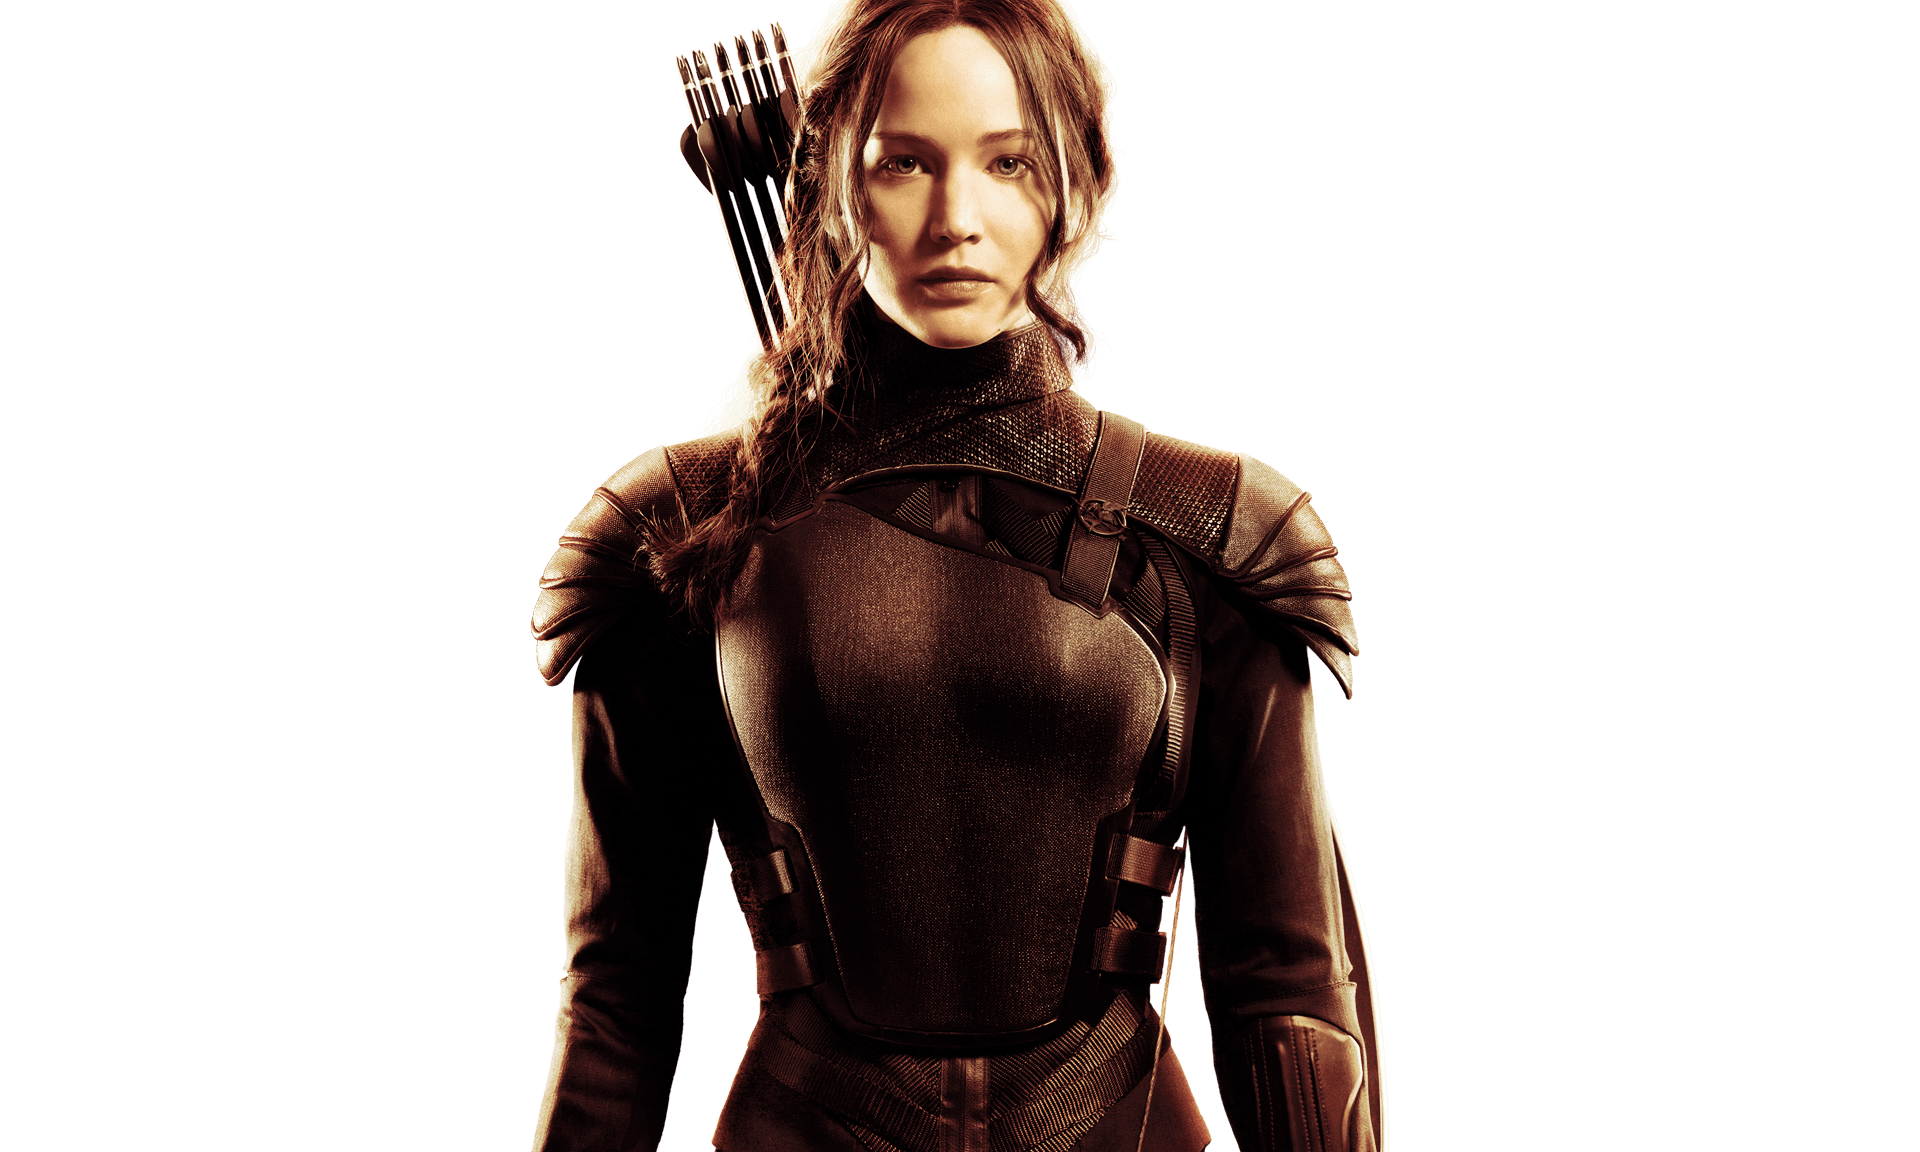 The Hunger Games Mockingjay E28093 Part 1 Image  - The Hunger Games, Transparent background PNG HD thumbnail